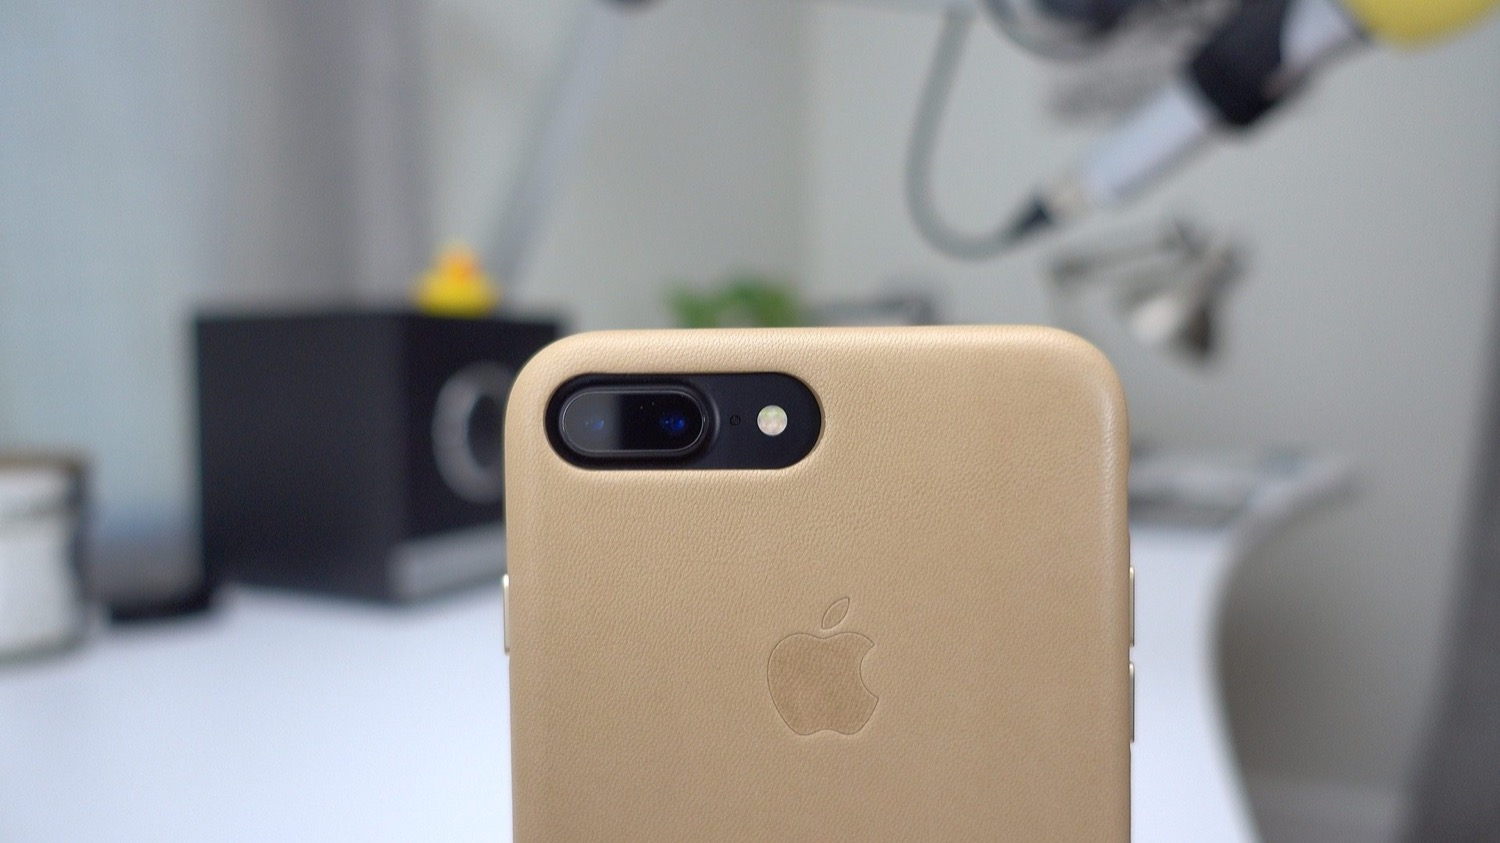 Apple got 103,6% of the profits in the smartphone market